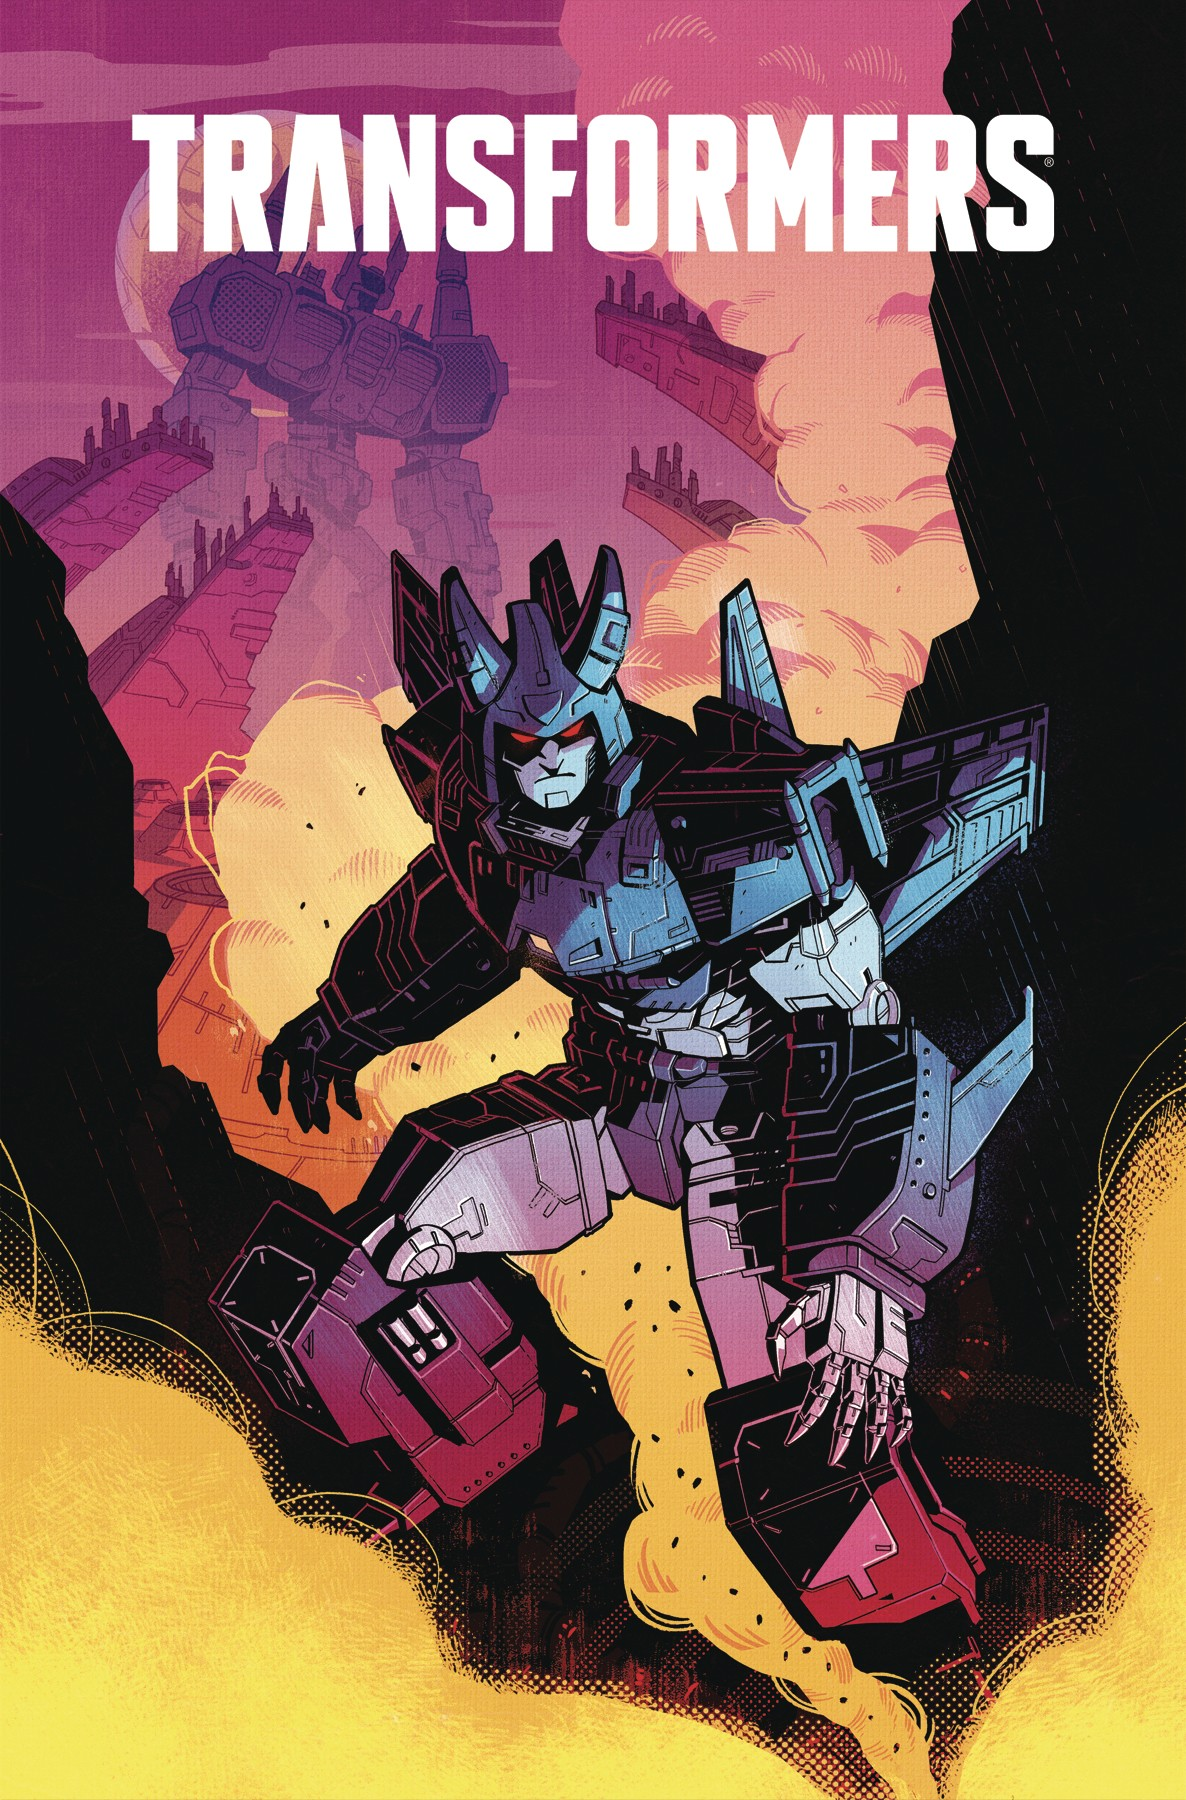 Transformers News: IDW Publishing June Transformers Solicitations